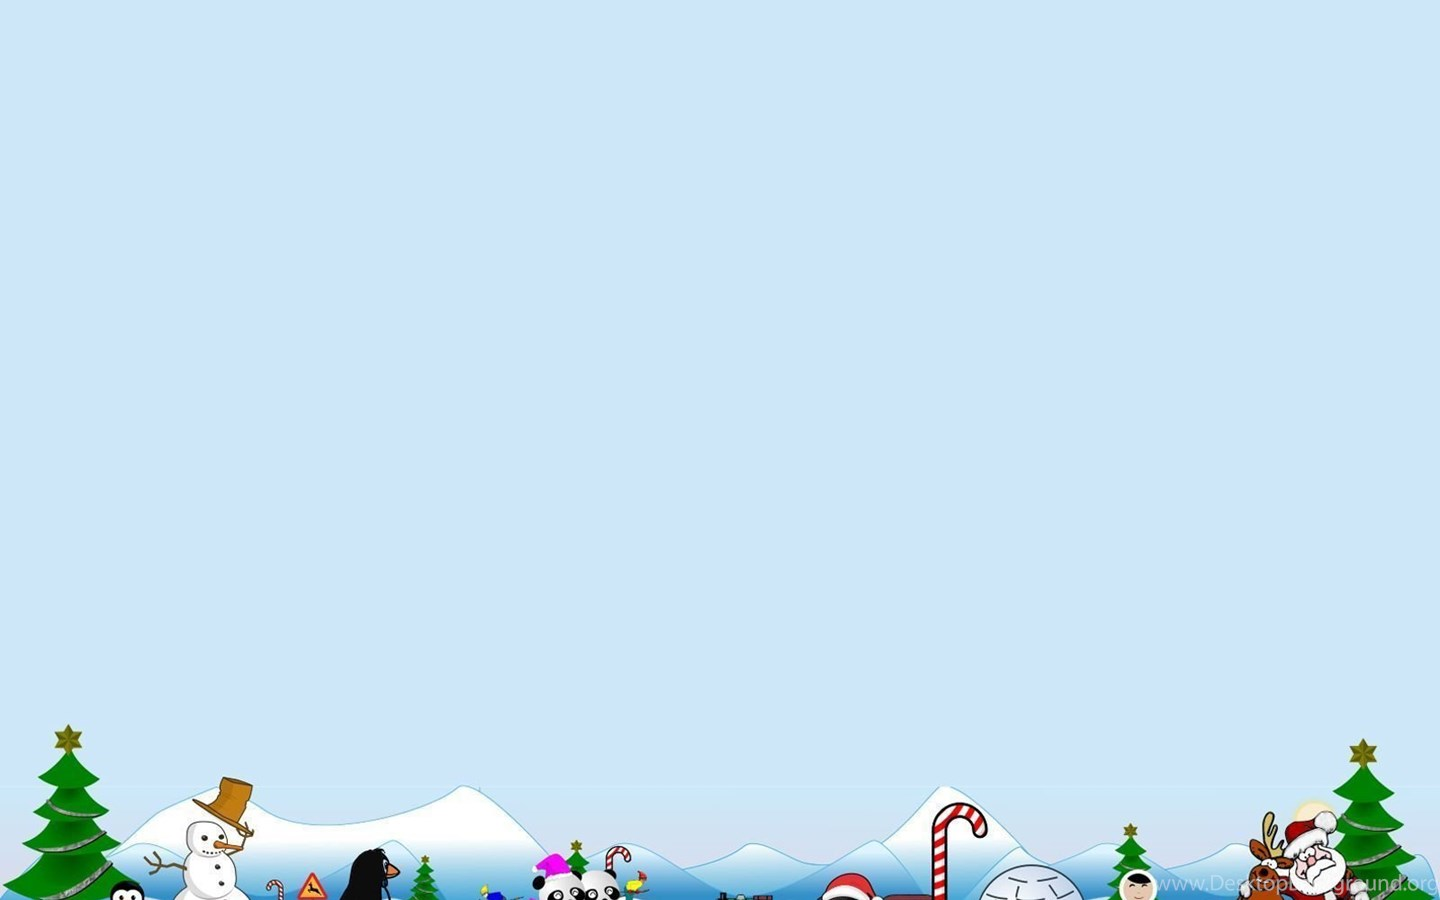 Hd Widescreen Christmas Desktop Wallpaper Artic North Pole Scene For Holidays Backgrounds Christmas